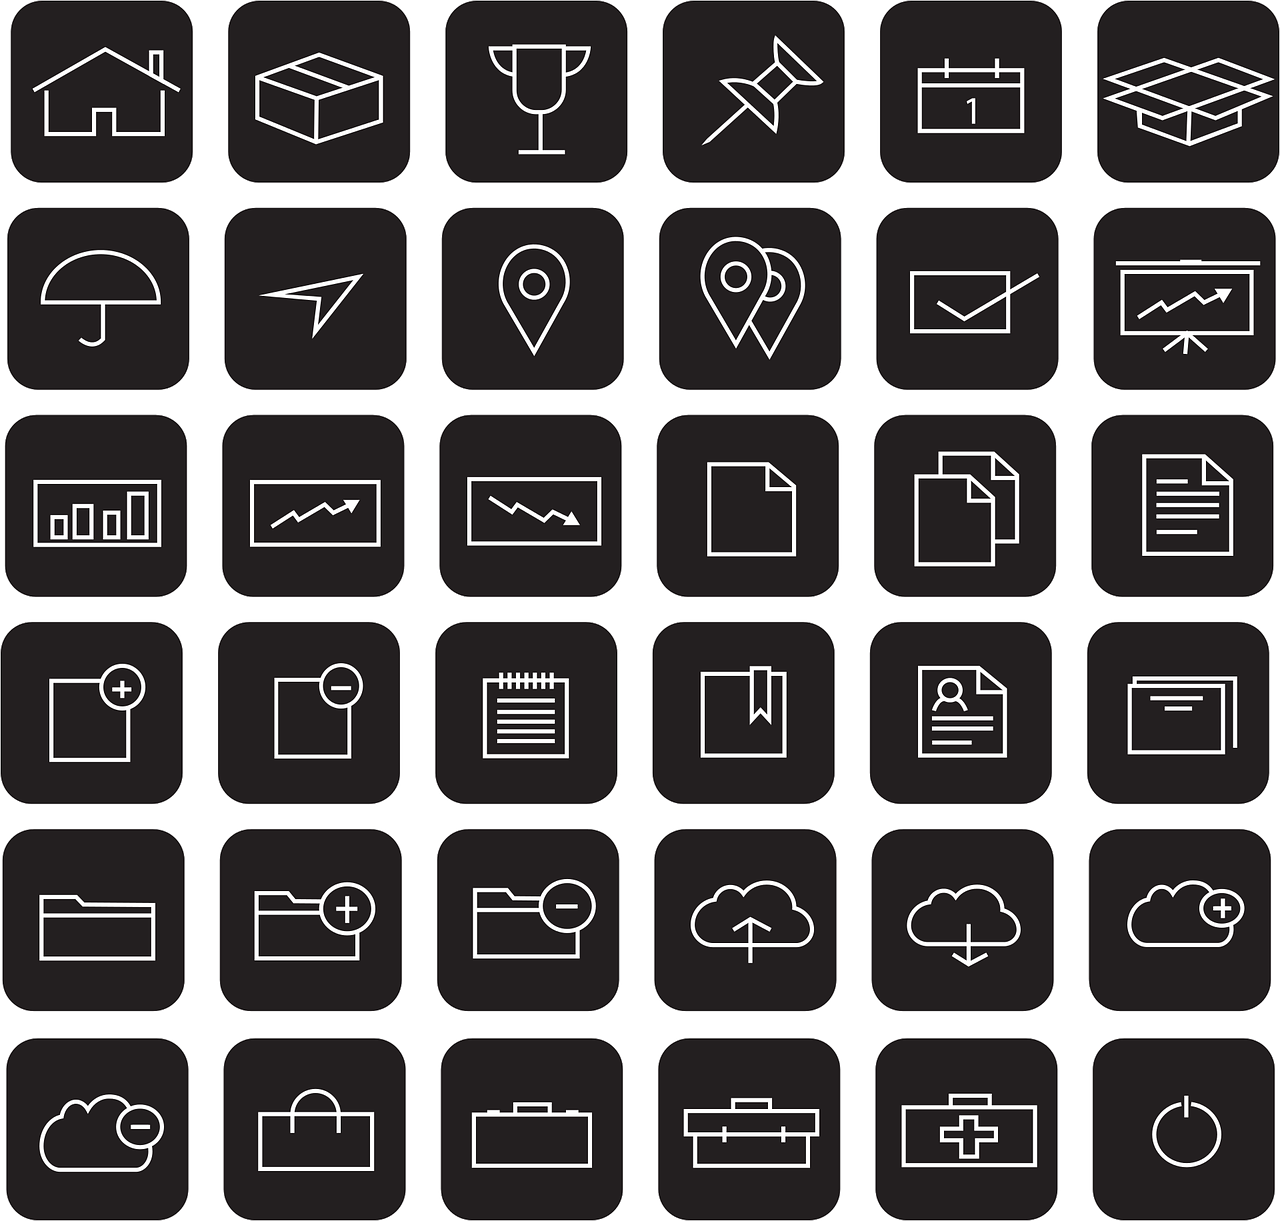 Icons Vector Document Free Icons Black Background Free Icons Free Icons Png Icon